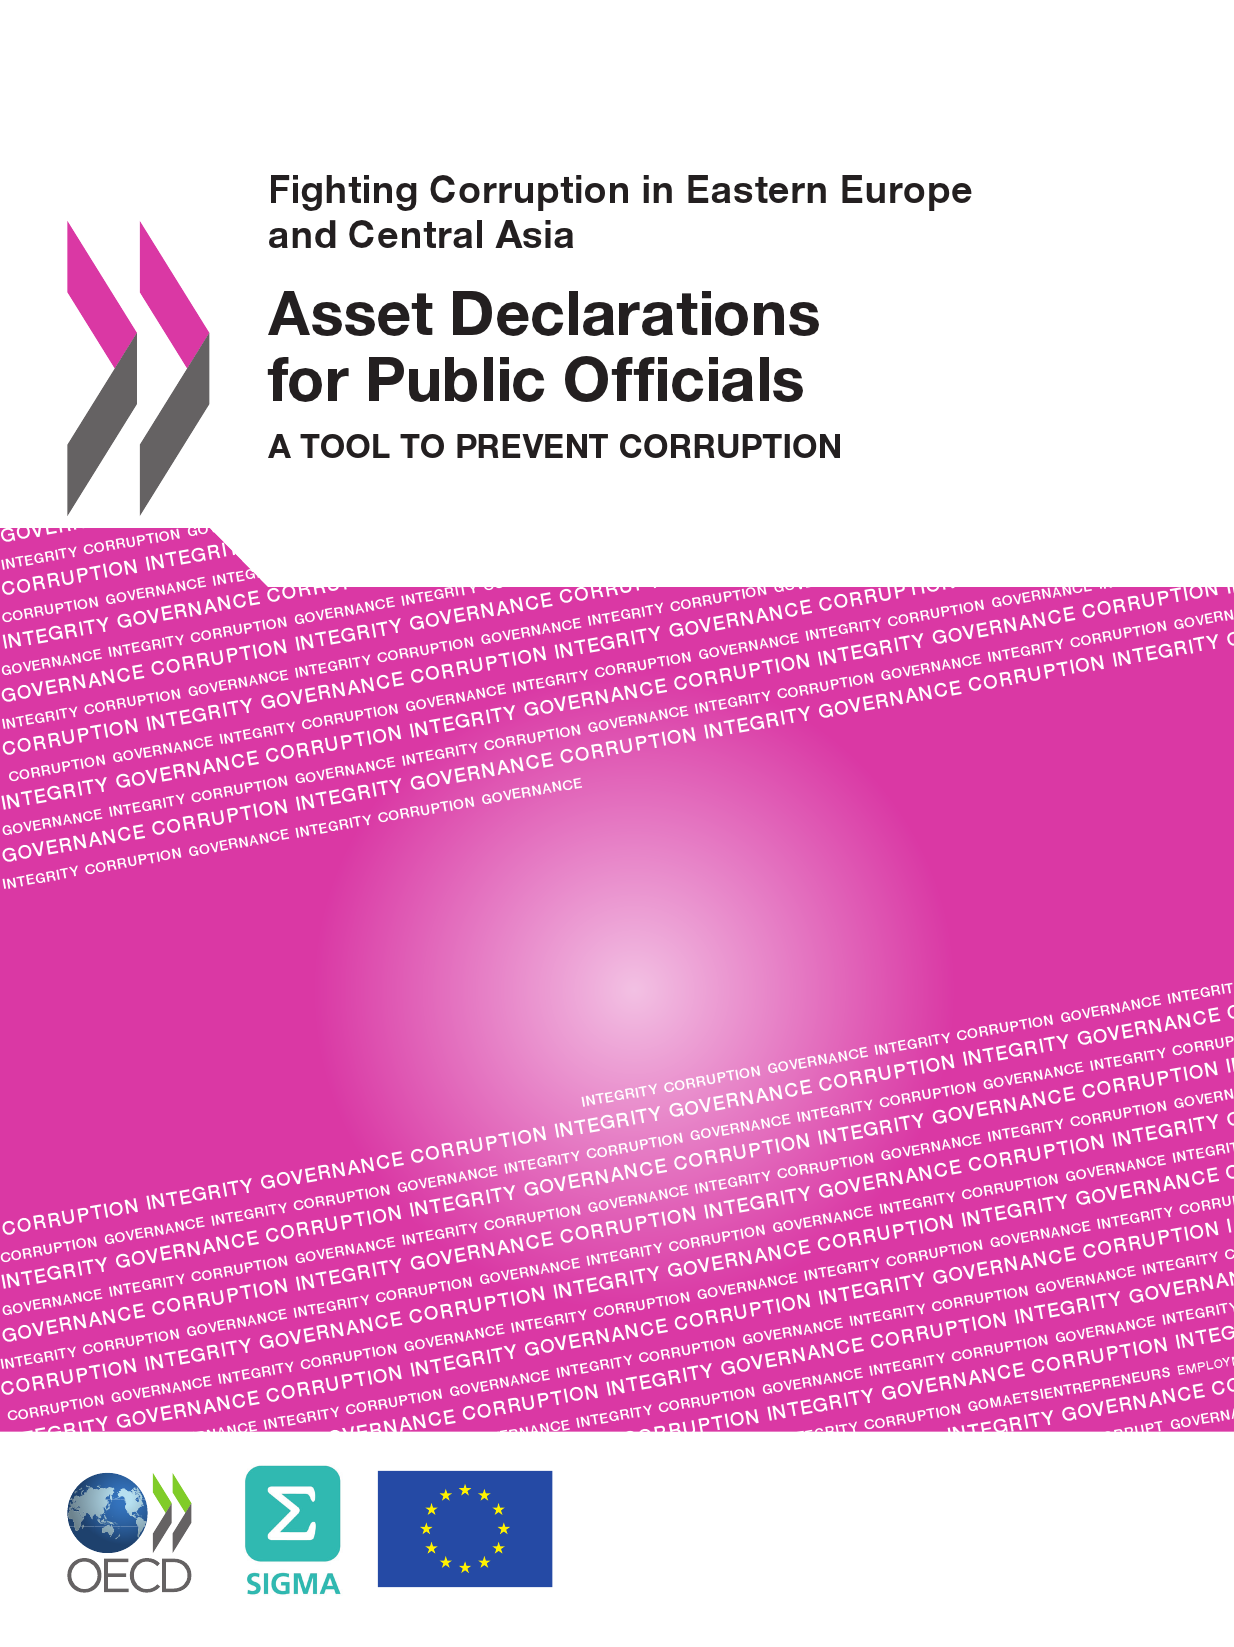 Asset Declarations for Public Officials